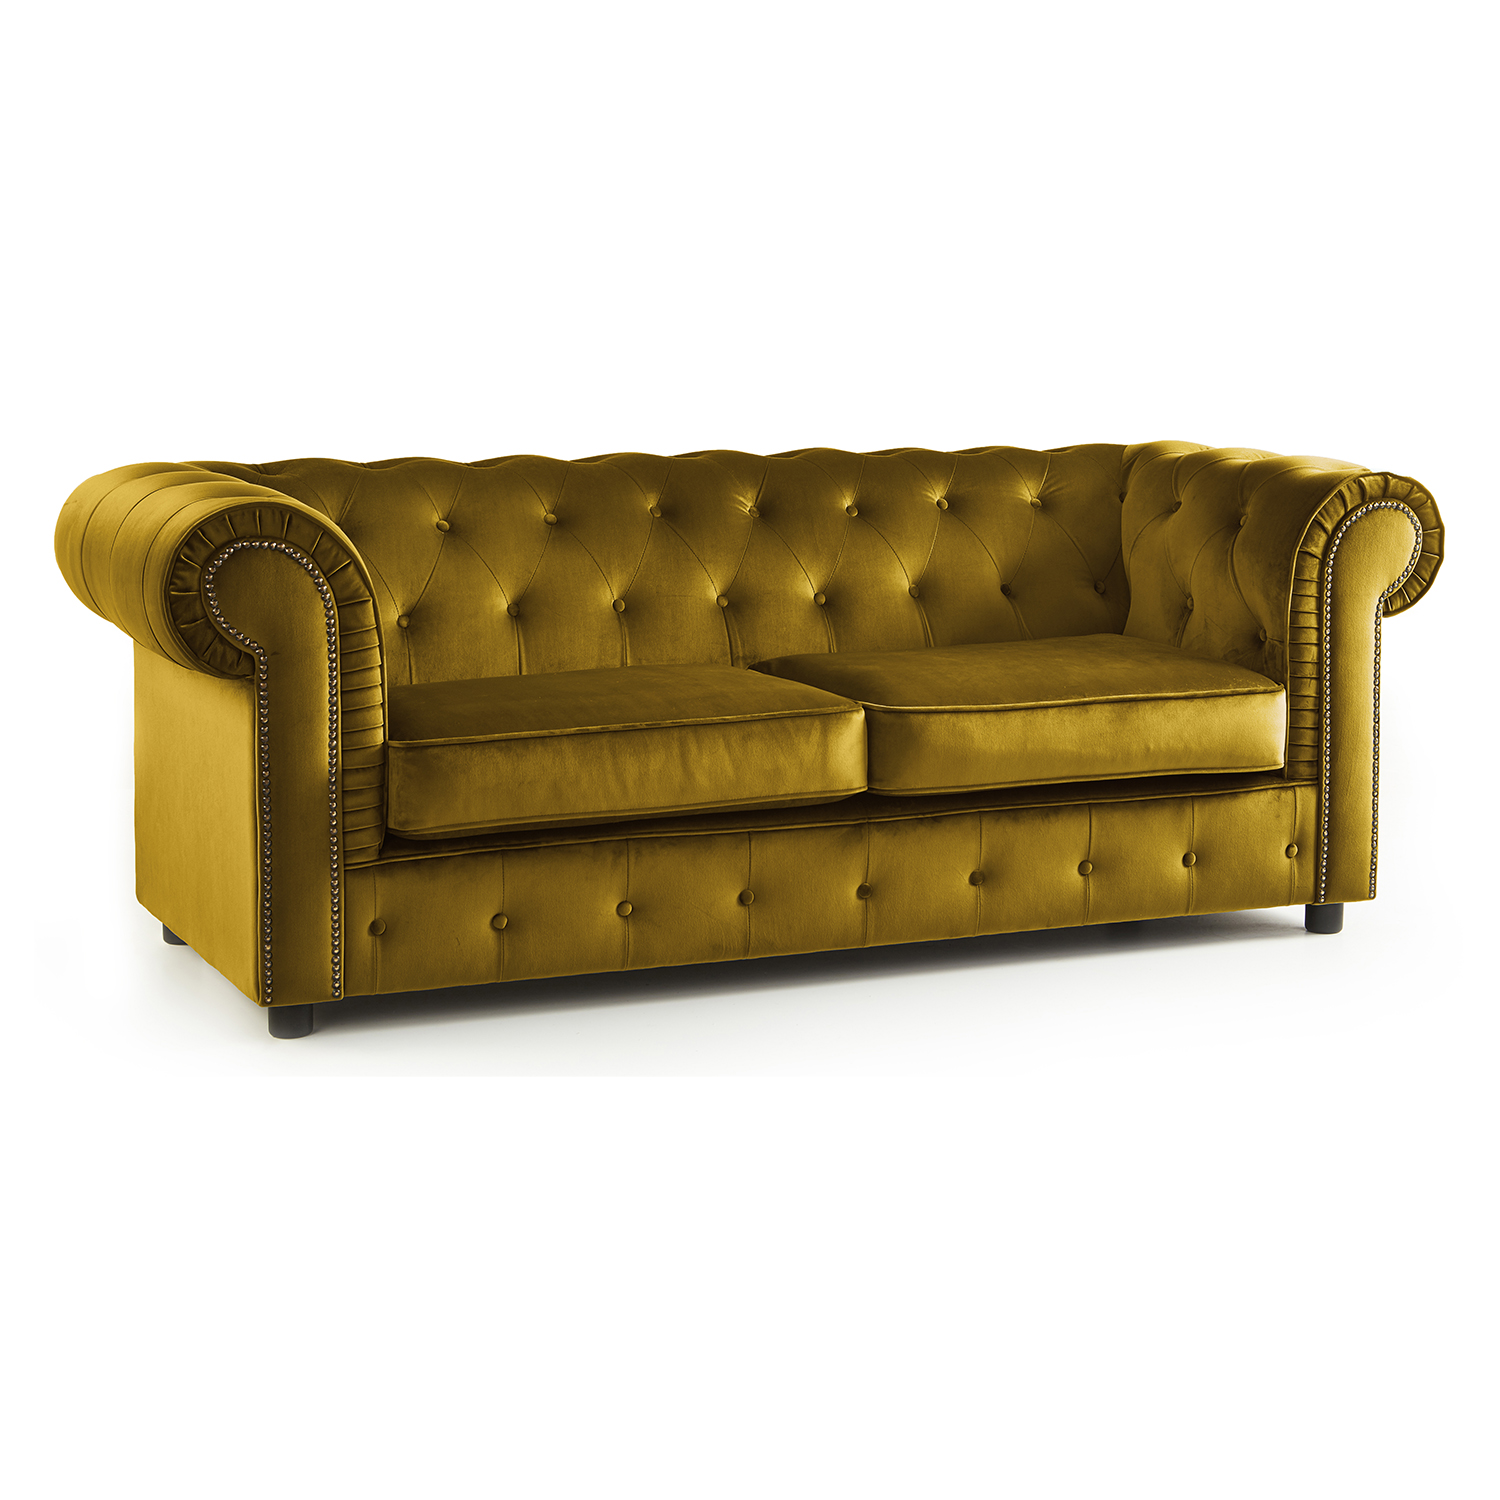 The Ashcroft Soft Velvet Chesterfield 3 Seater Sofa - Mustard